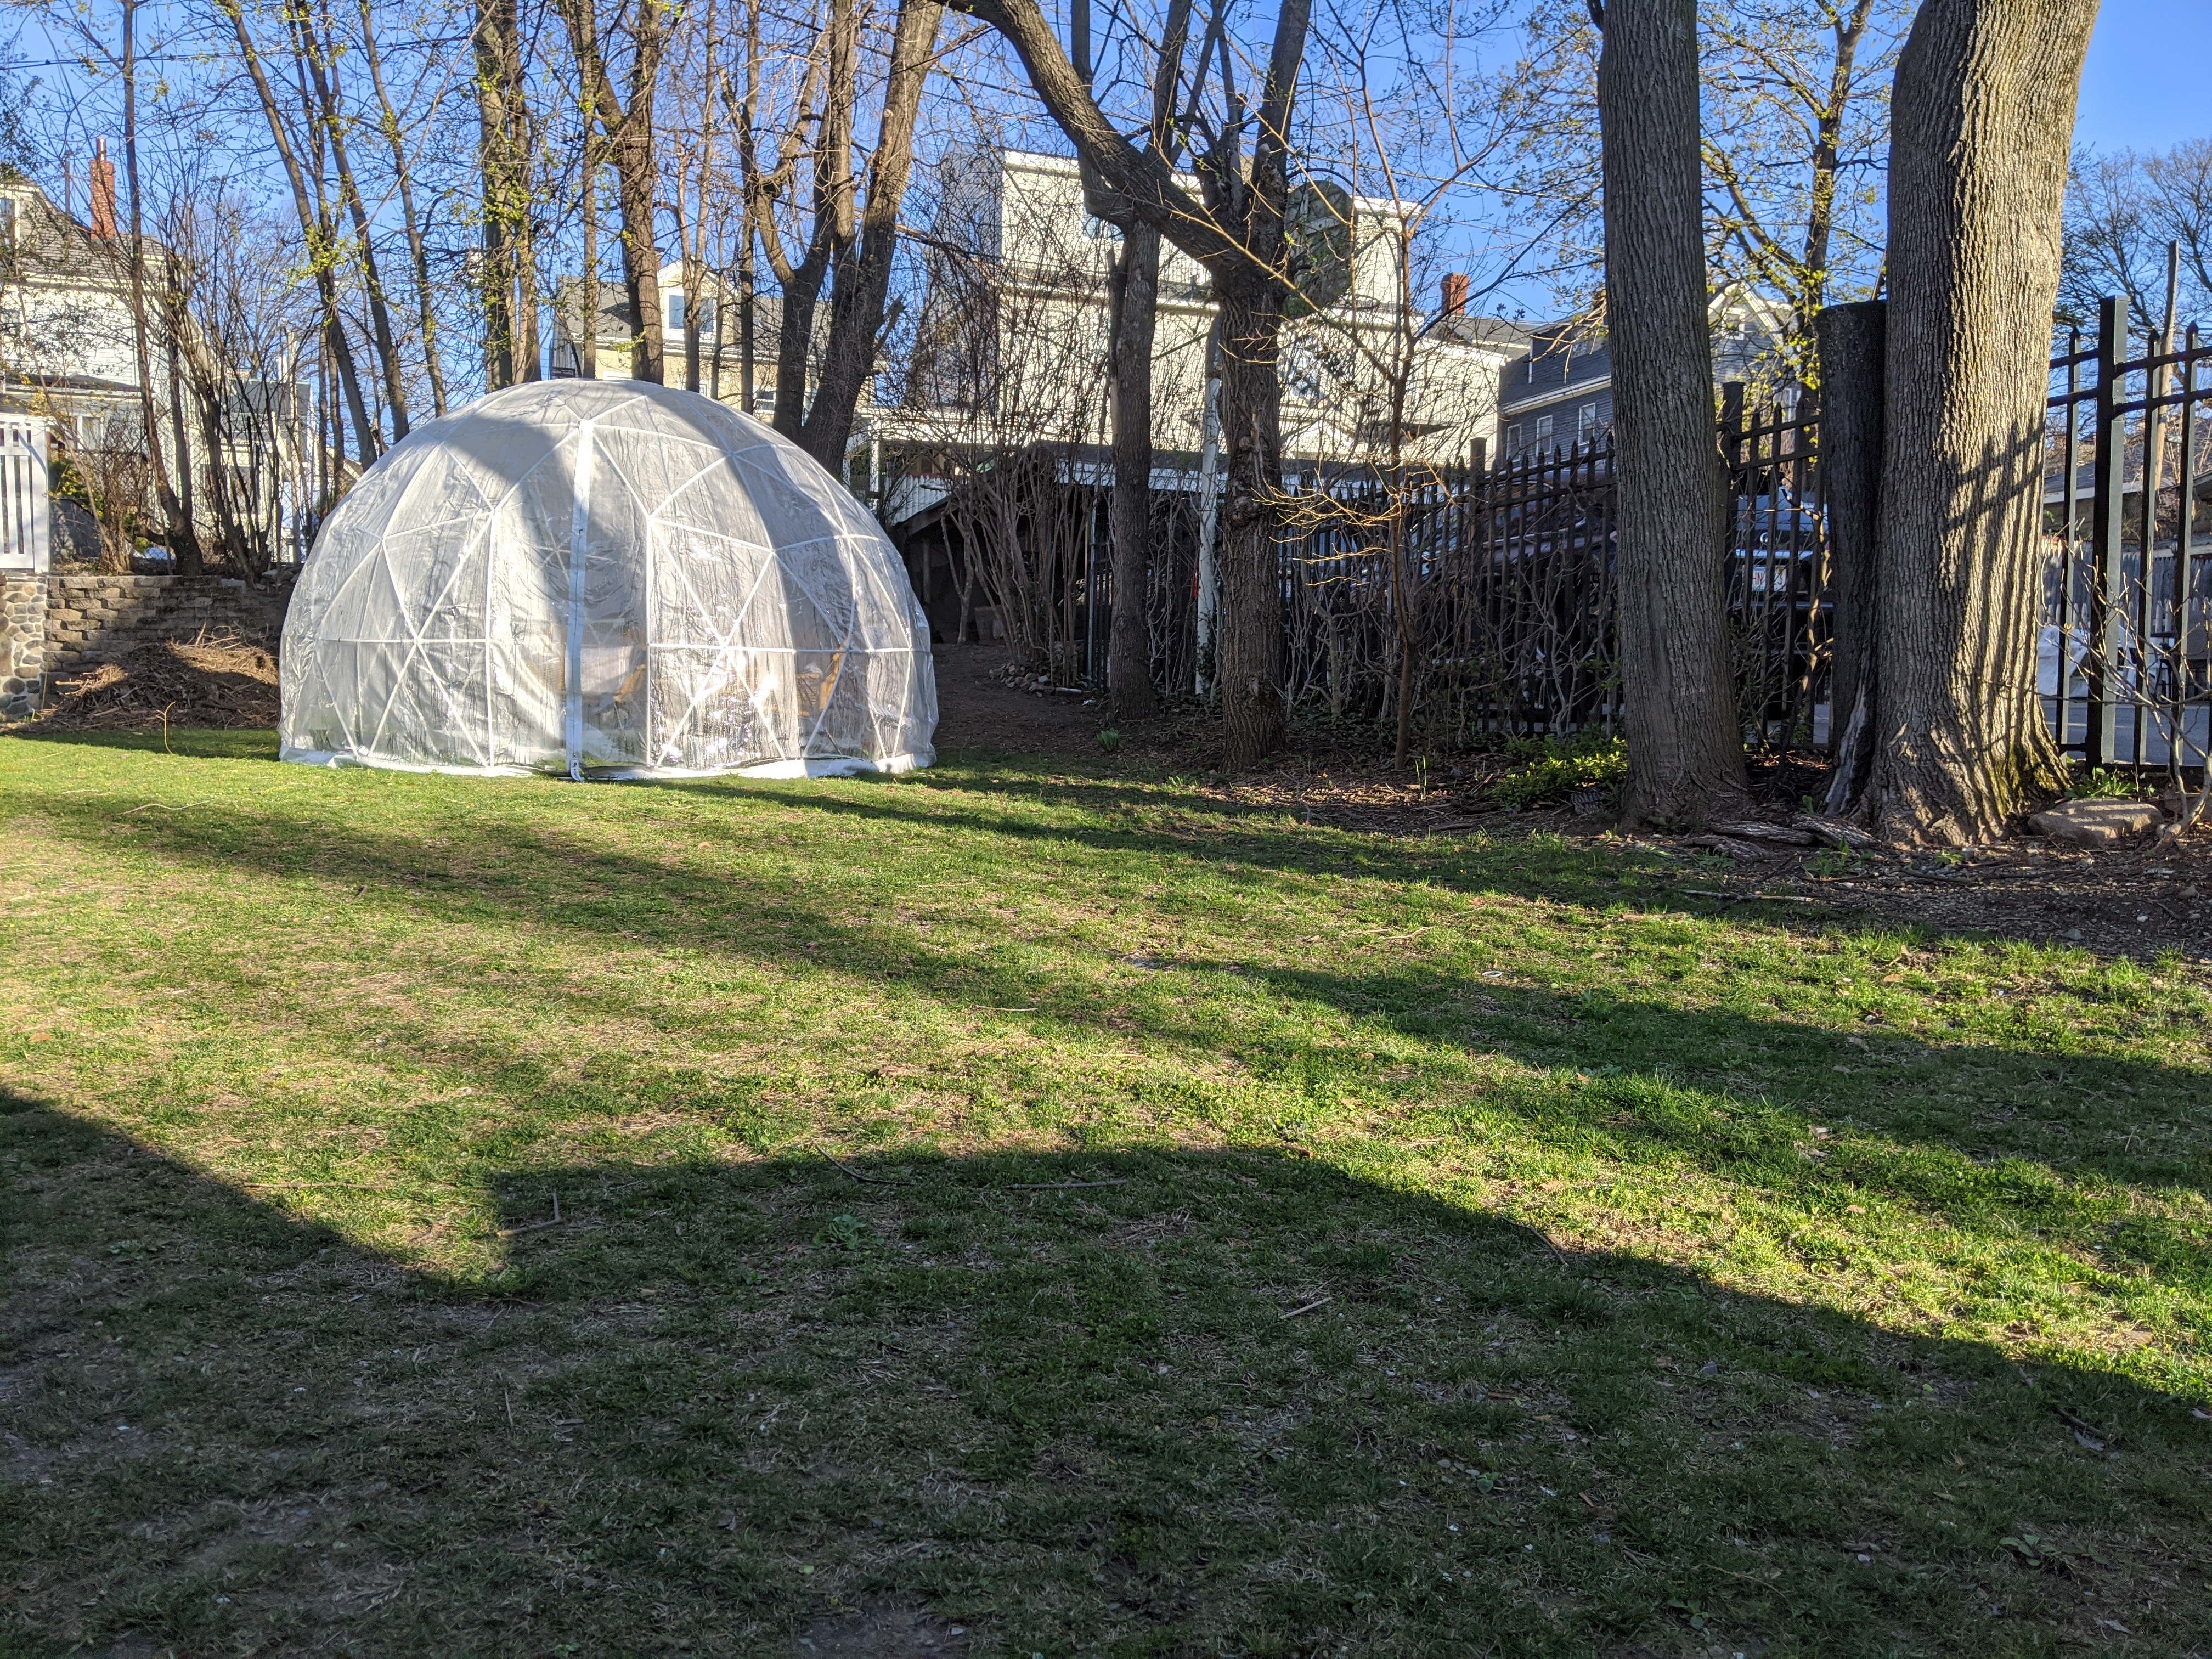 A backyard with an igloo tent